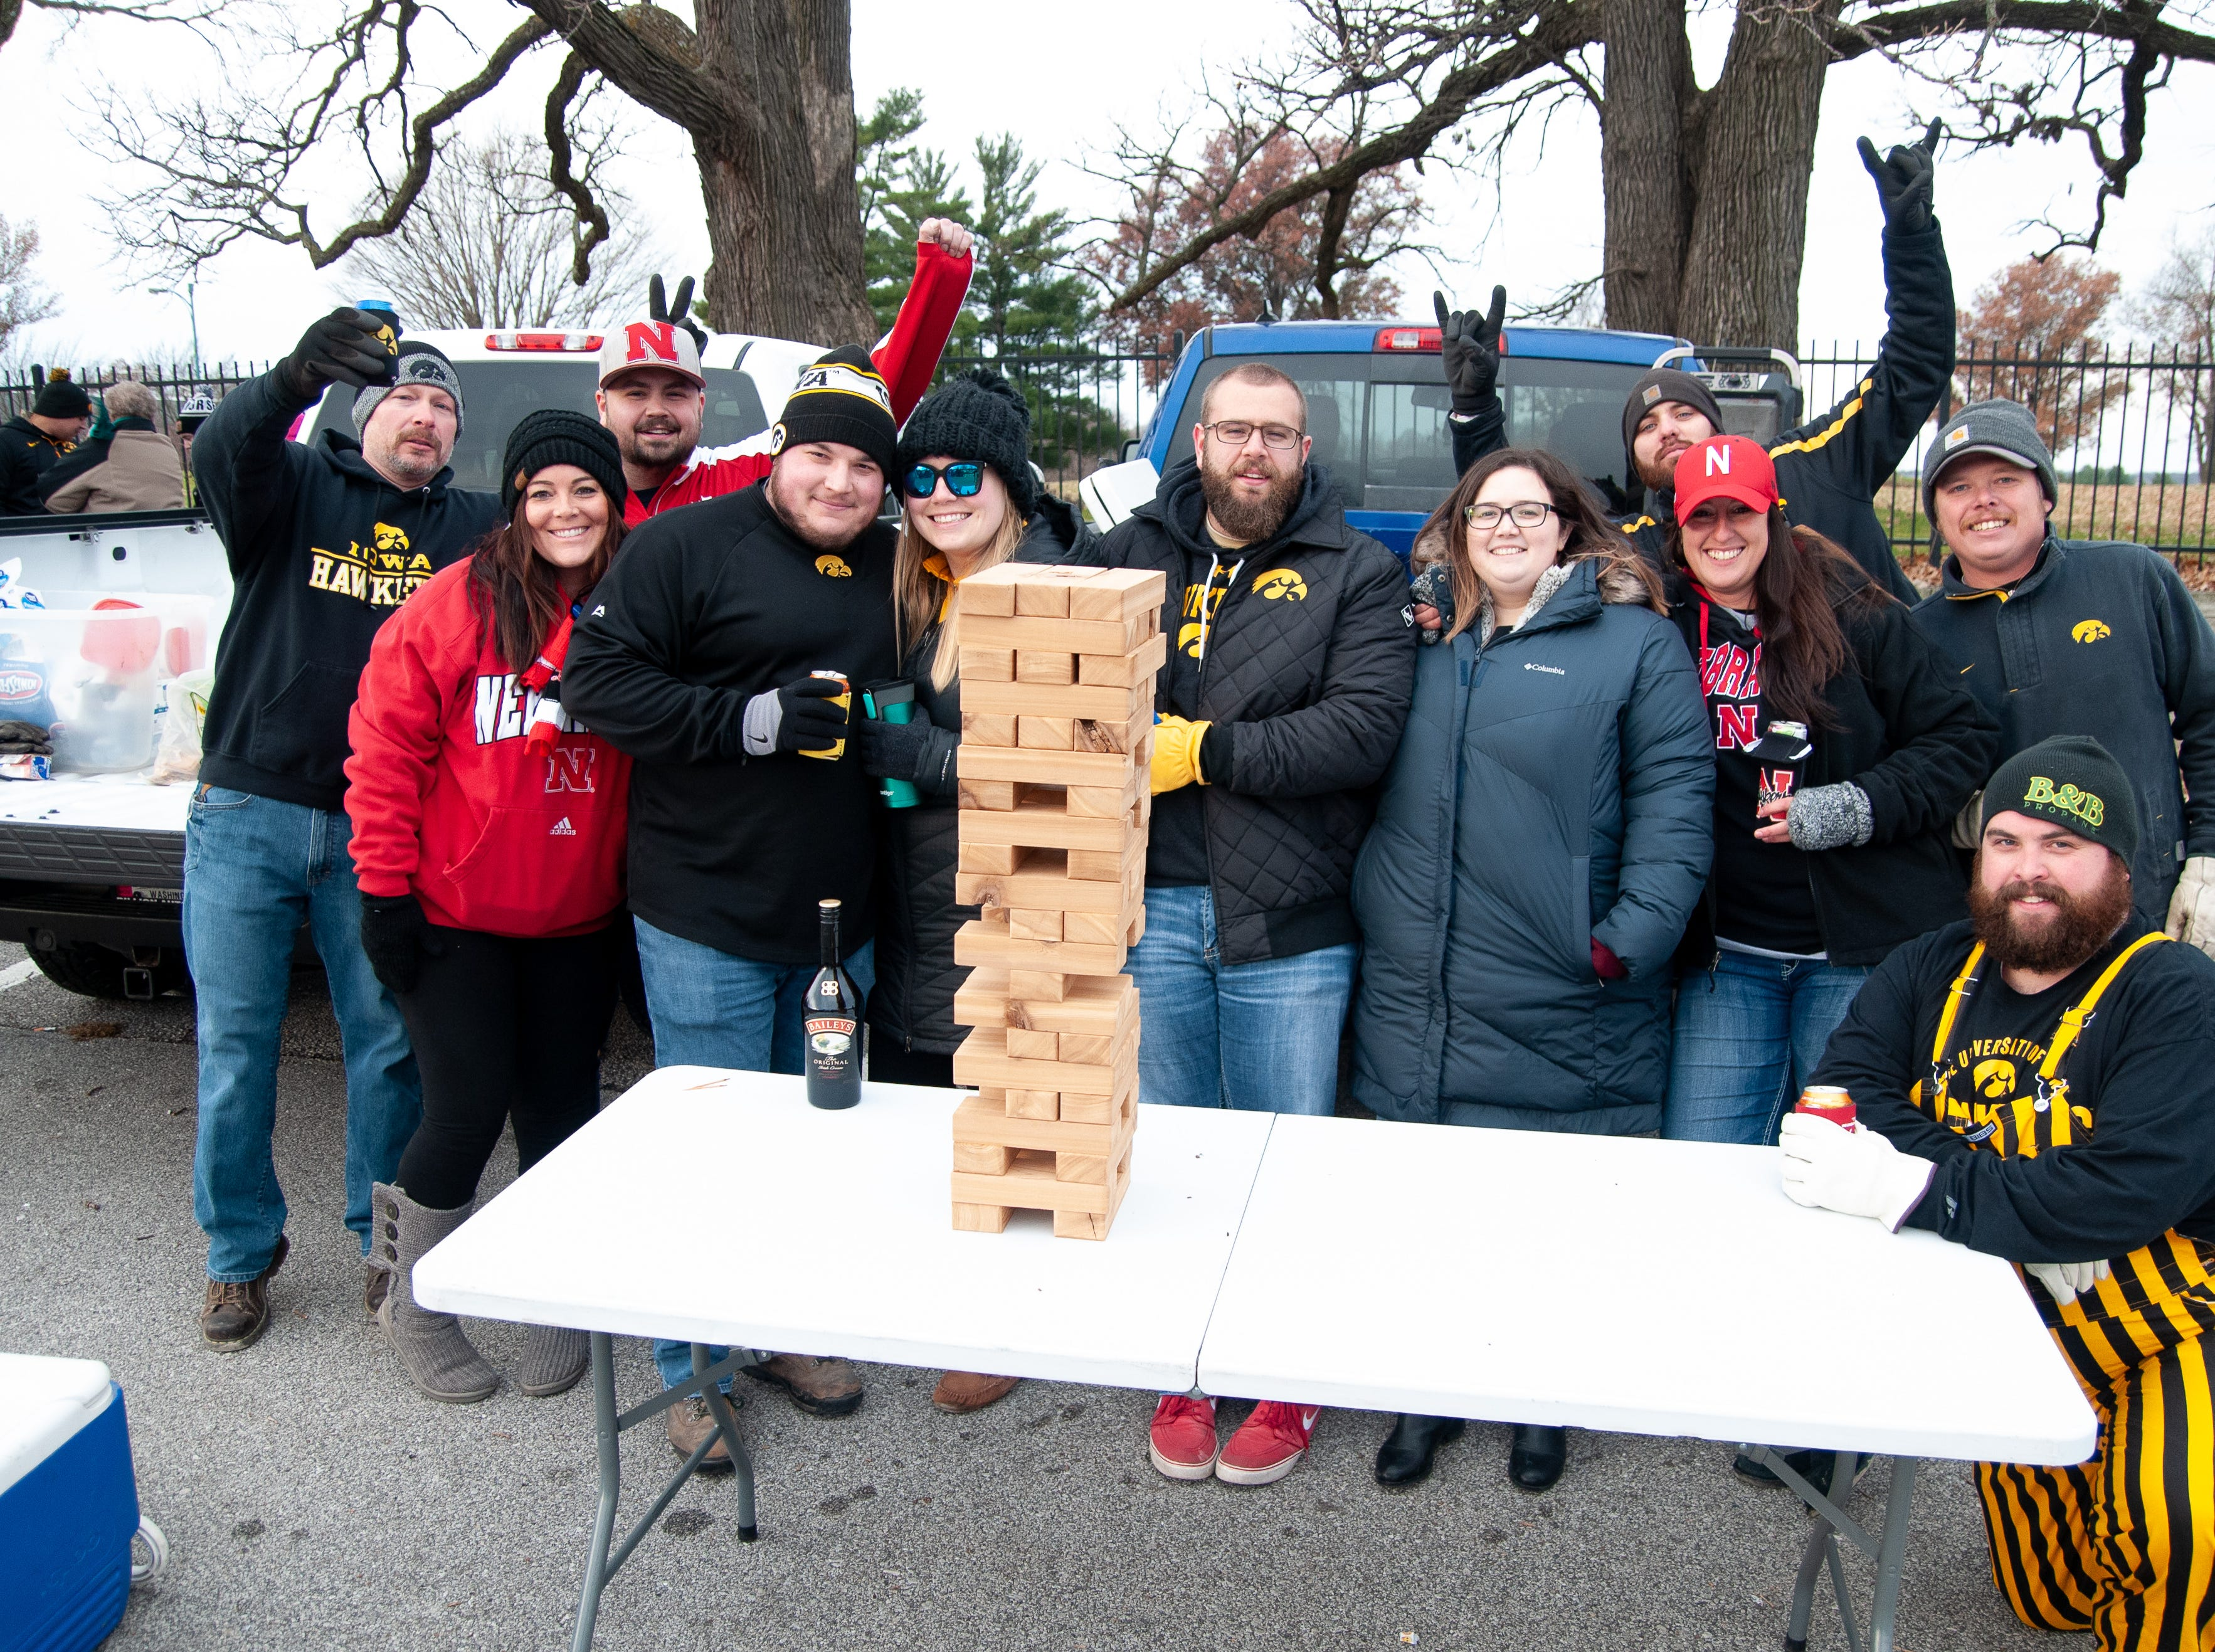 The Eldon River Barbecue Tailgate, of Eldon, Friday, Nov. 23, 2018, while tailgating before the Iowa game against Nebraska in Iowa City.